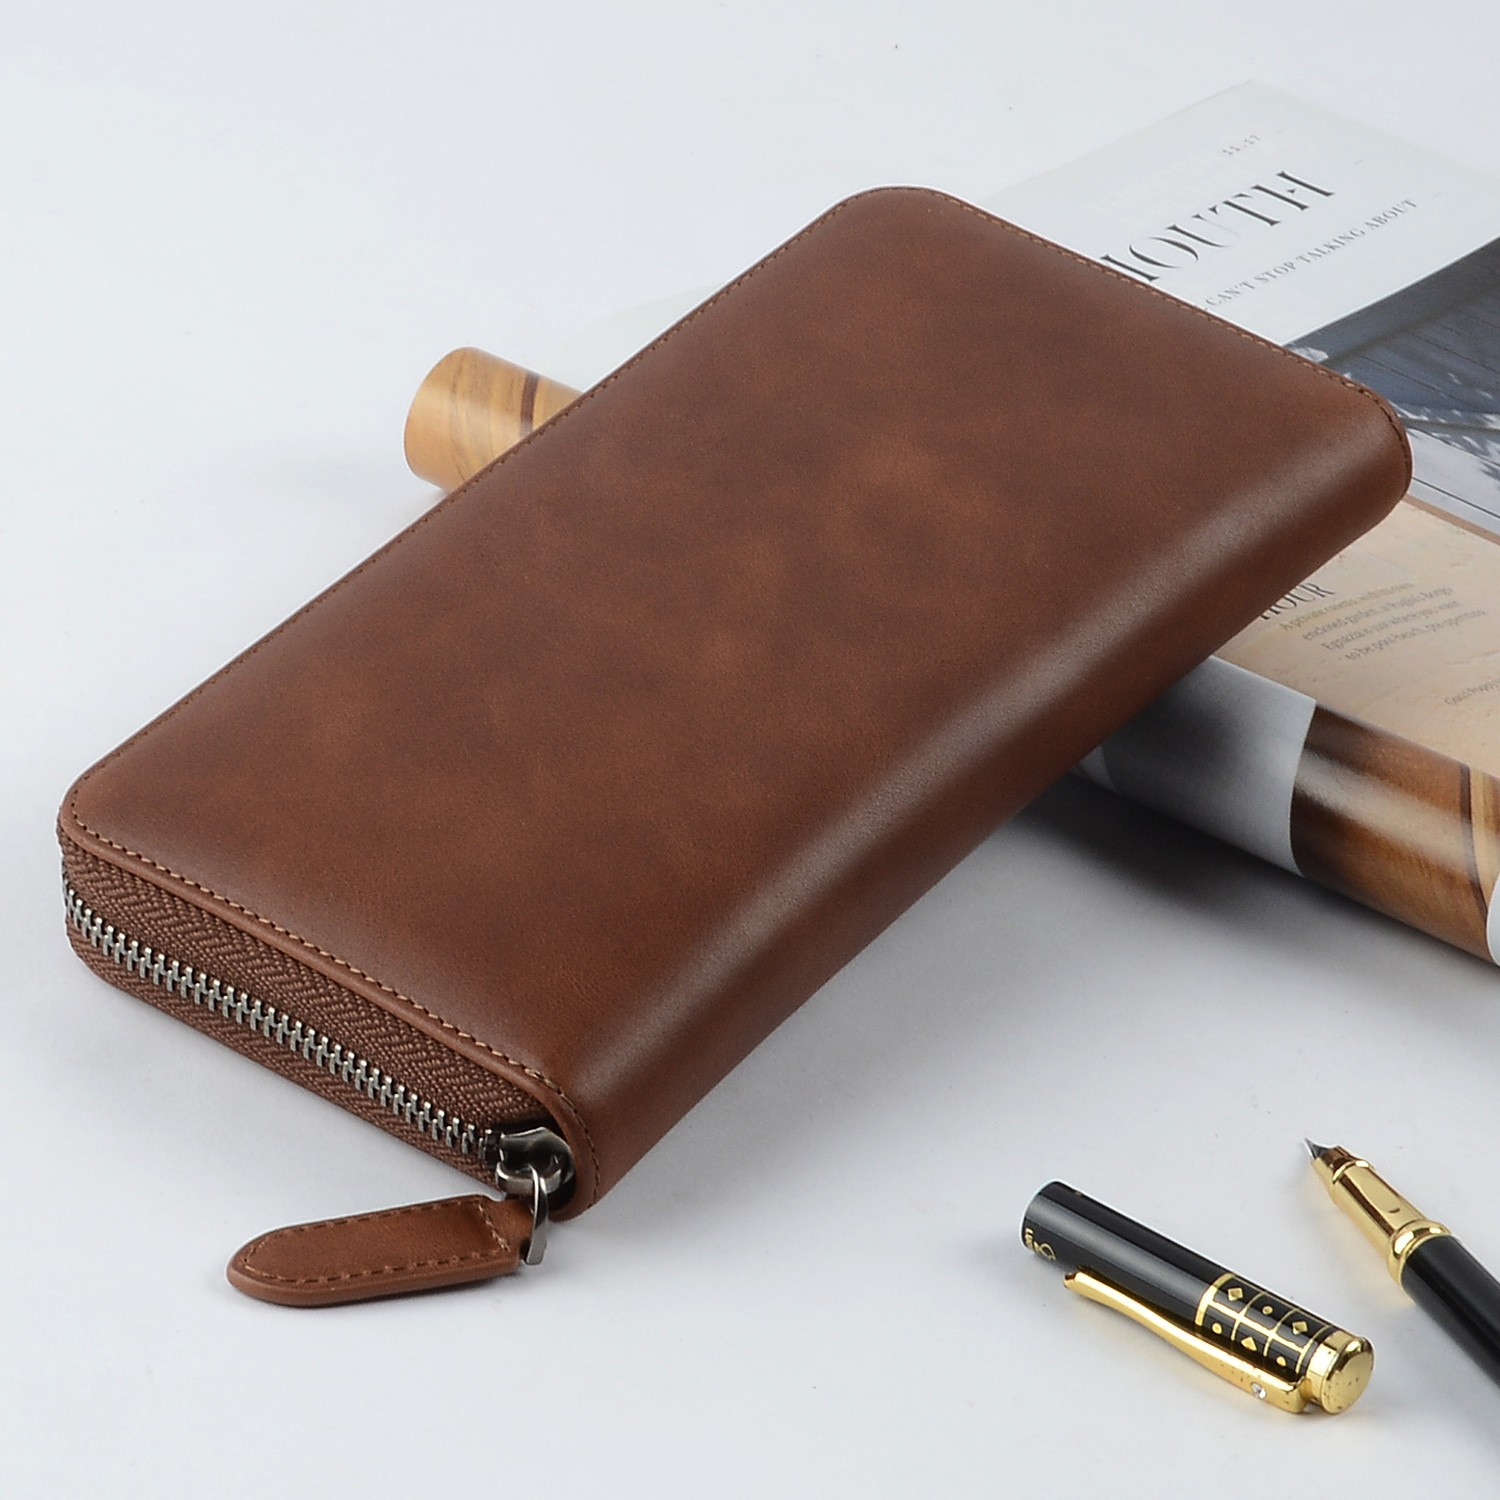 AIVI leather card wallet online for iphone 7/7 plus-6